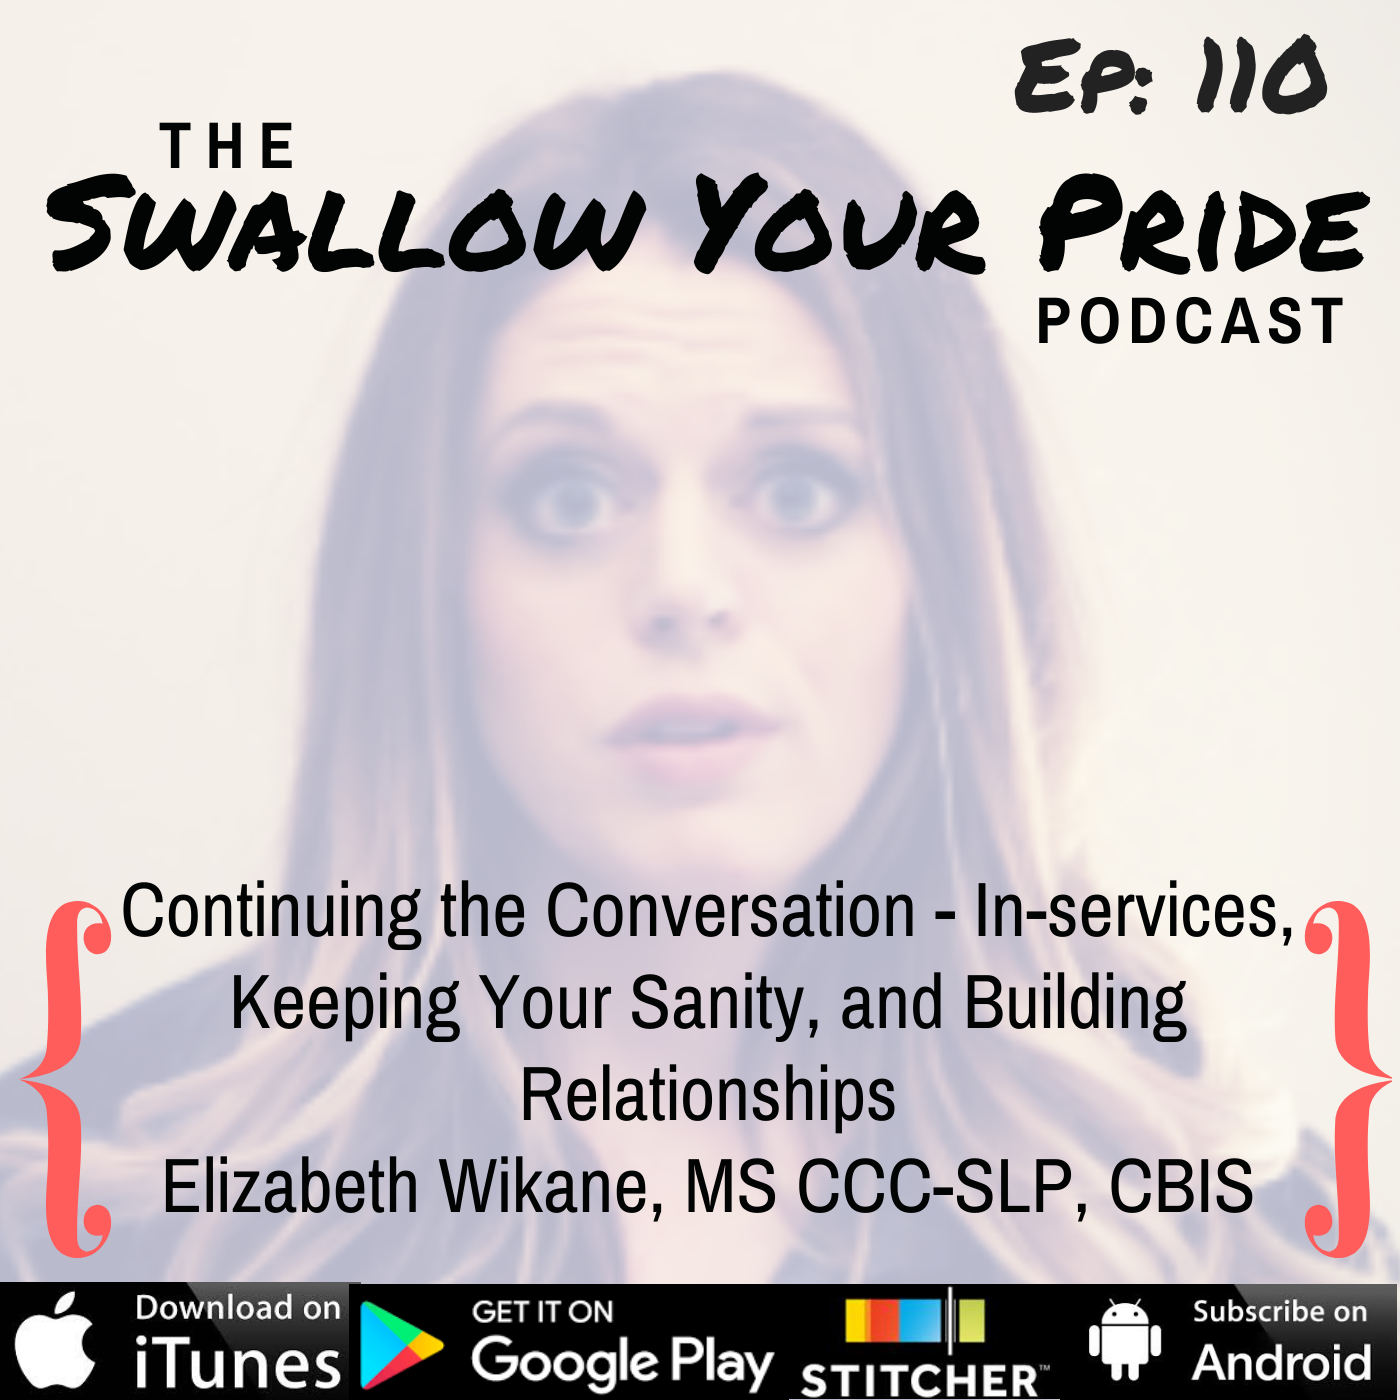 110 – Elizabeth Wikane, MS CCC-SLP, CBIS – Continuing the Conversation – In-services, Keeping Your Sanity, and Building Relationships